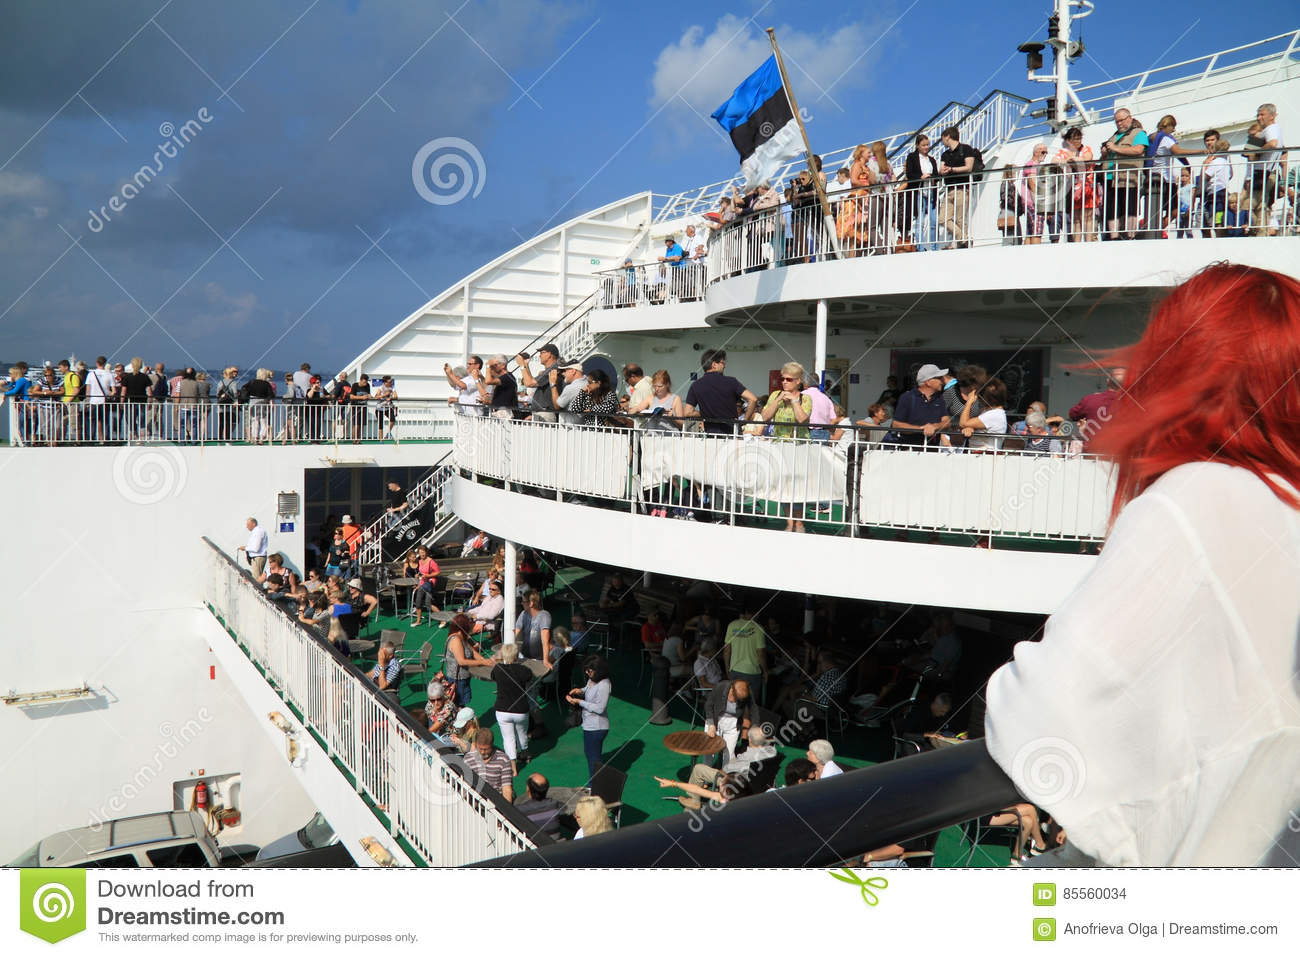 Crowd of the people who are having a rest on the ferry